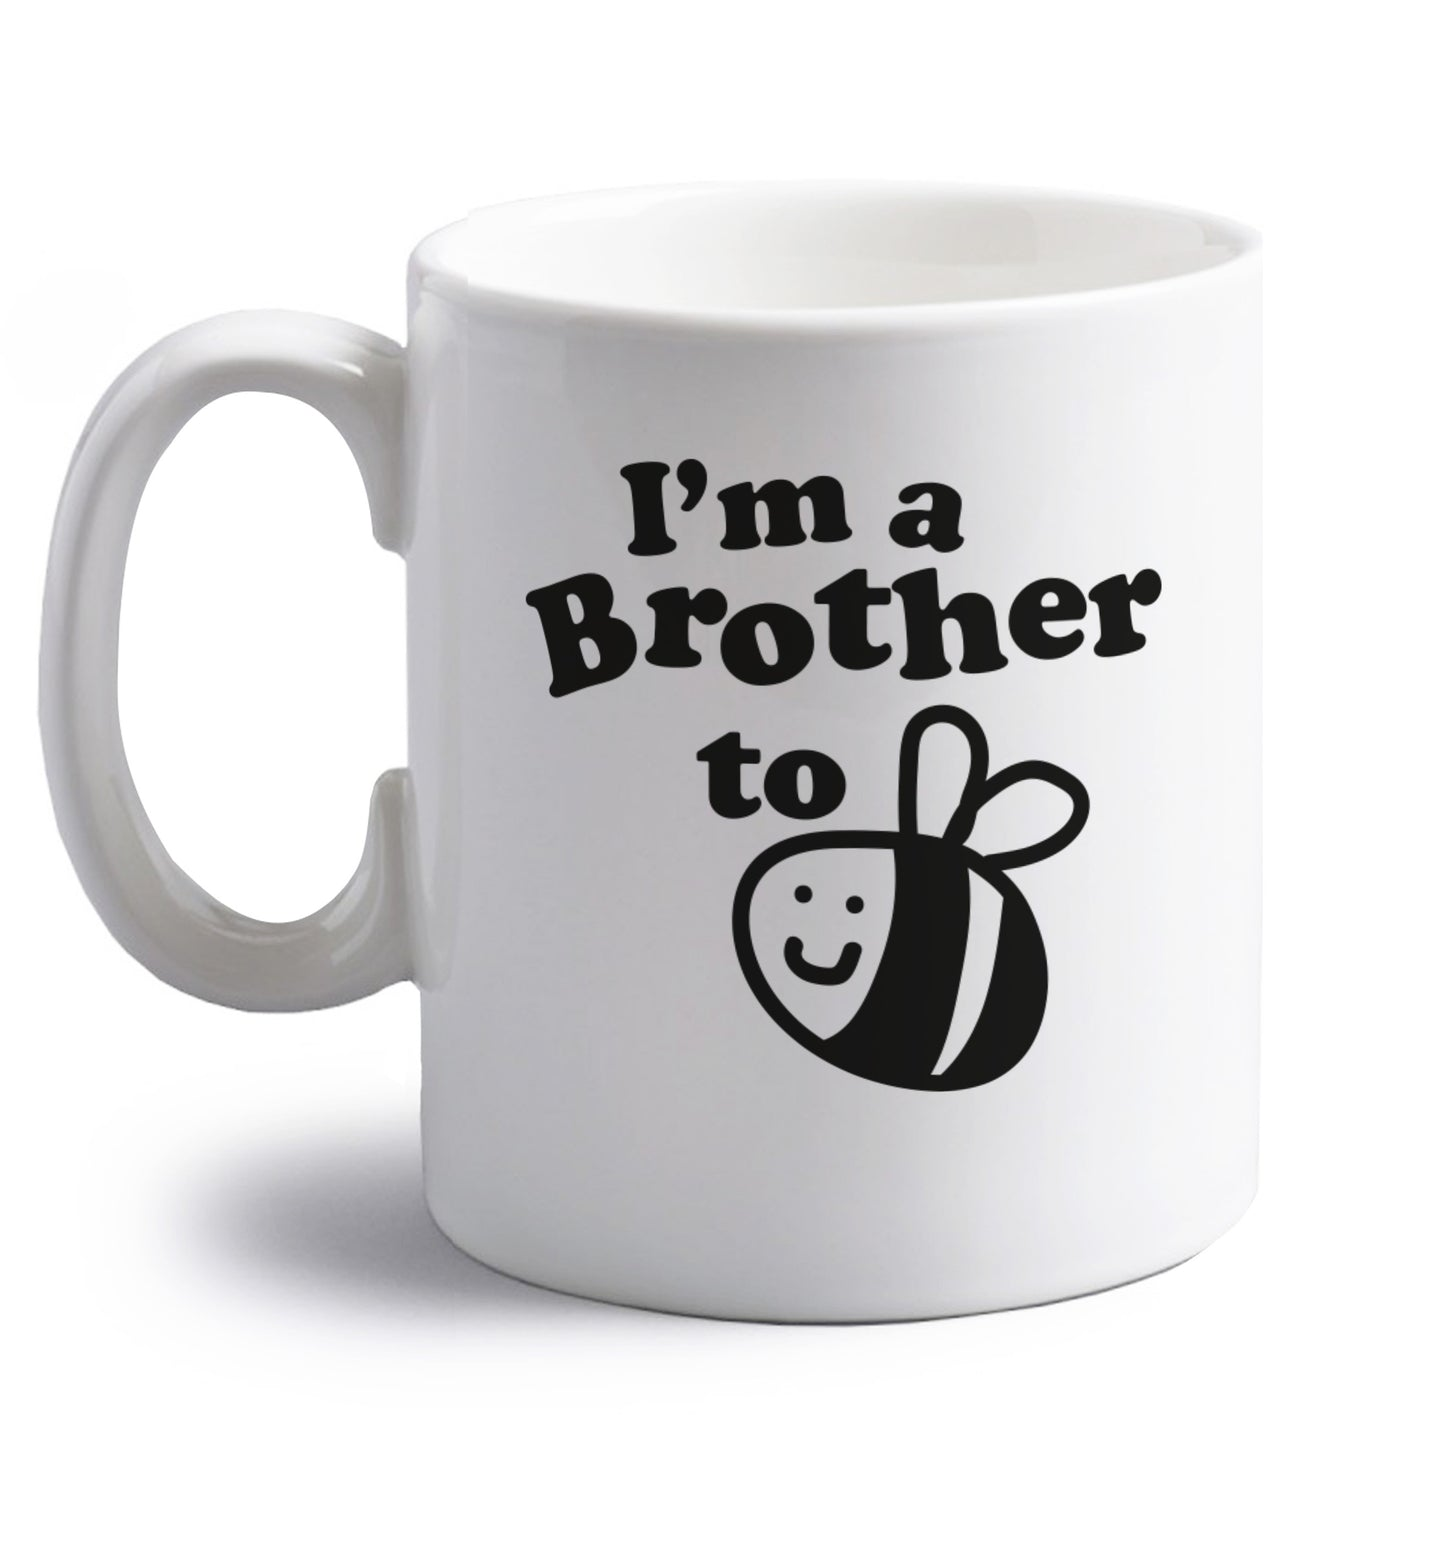 I'm a brother to be right handed white ceramic mug